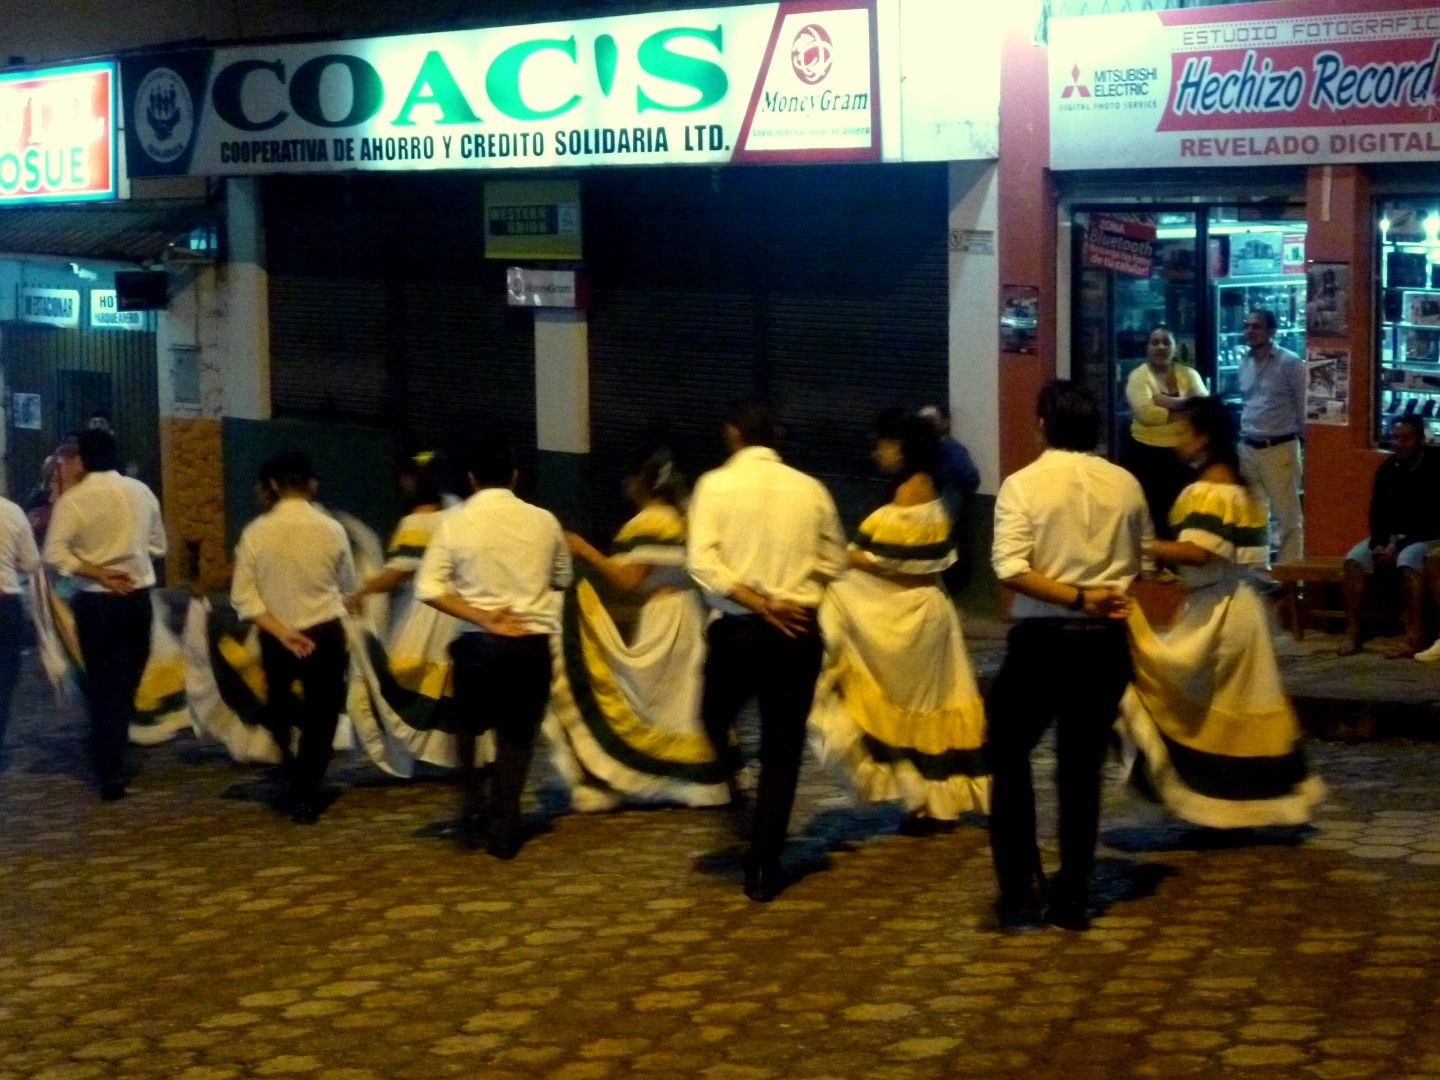 men and women dancing on the street wearing white and black customs